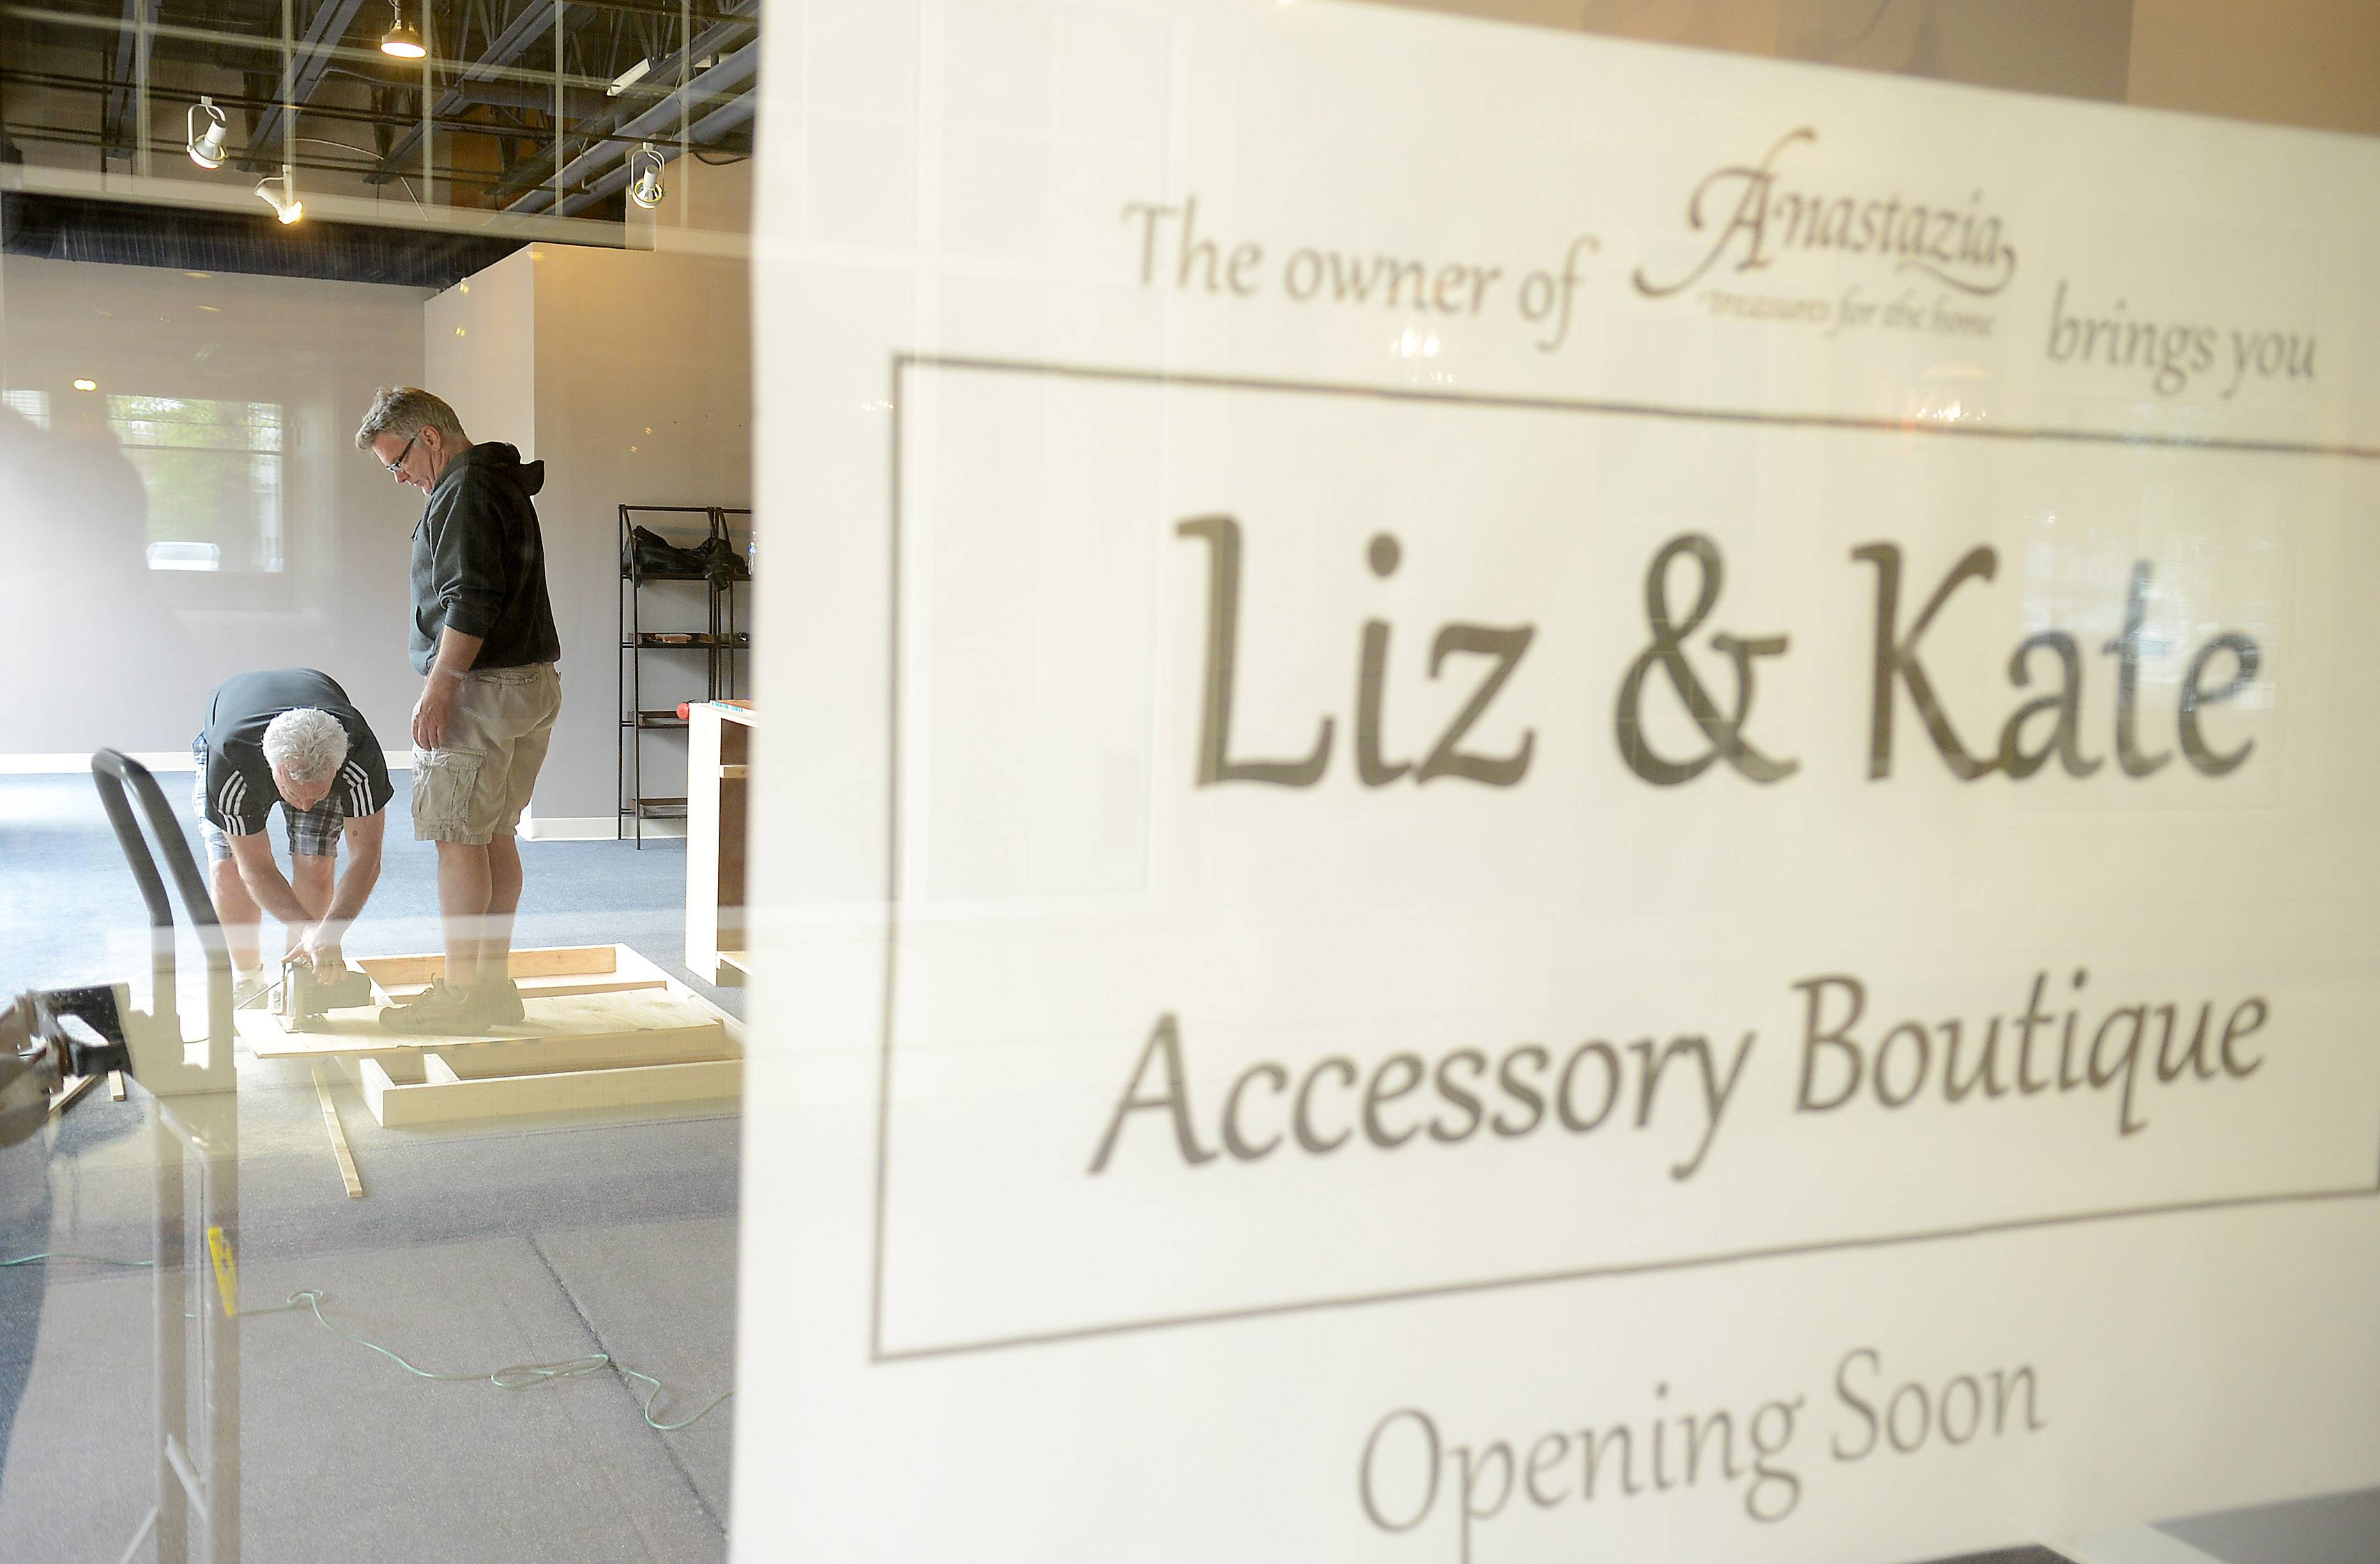 Owner Tom Konopacki, right, works with his brother Paul as they ready Liz & Kate Accessory Boutique to open in Dodson Place in Geneva. The store is a spinoff of home decor store Anastazia, and it basically moves the jewelry, handbags, scarves and other accessories into their own shop.